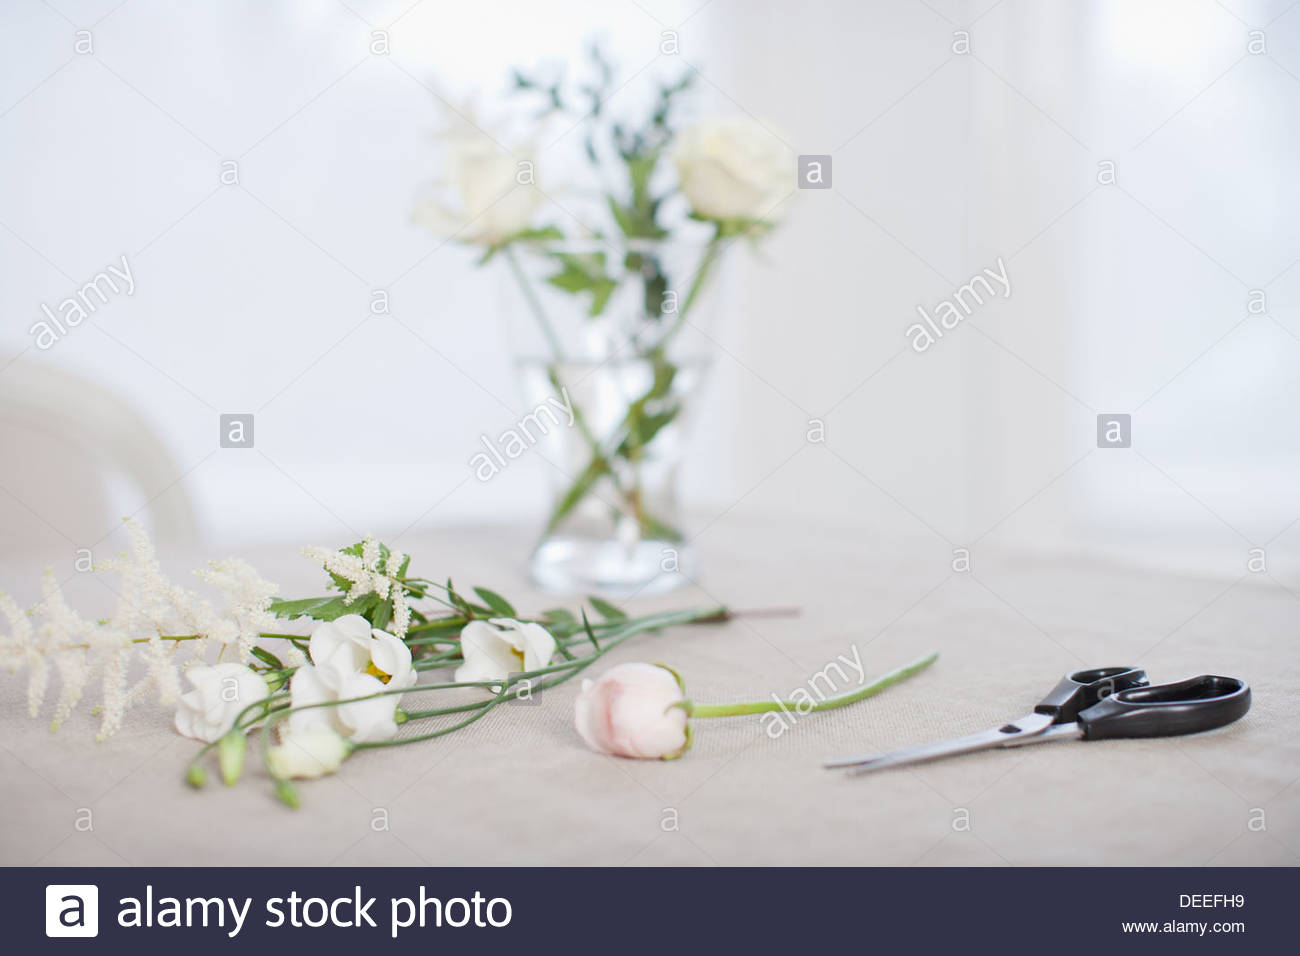 Flowers and vase choice image vases design picture flowers and vase on table with scissors stock photo 60555861 alamy flowers and vase on table reviewsmspy